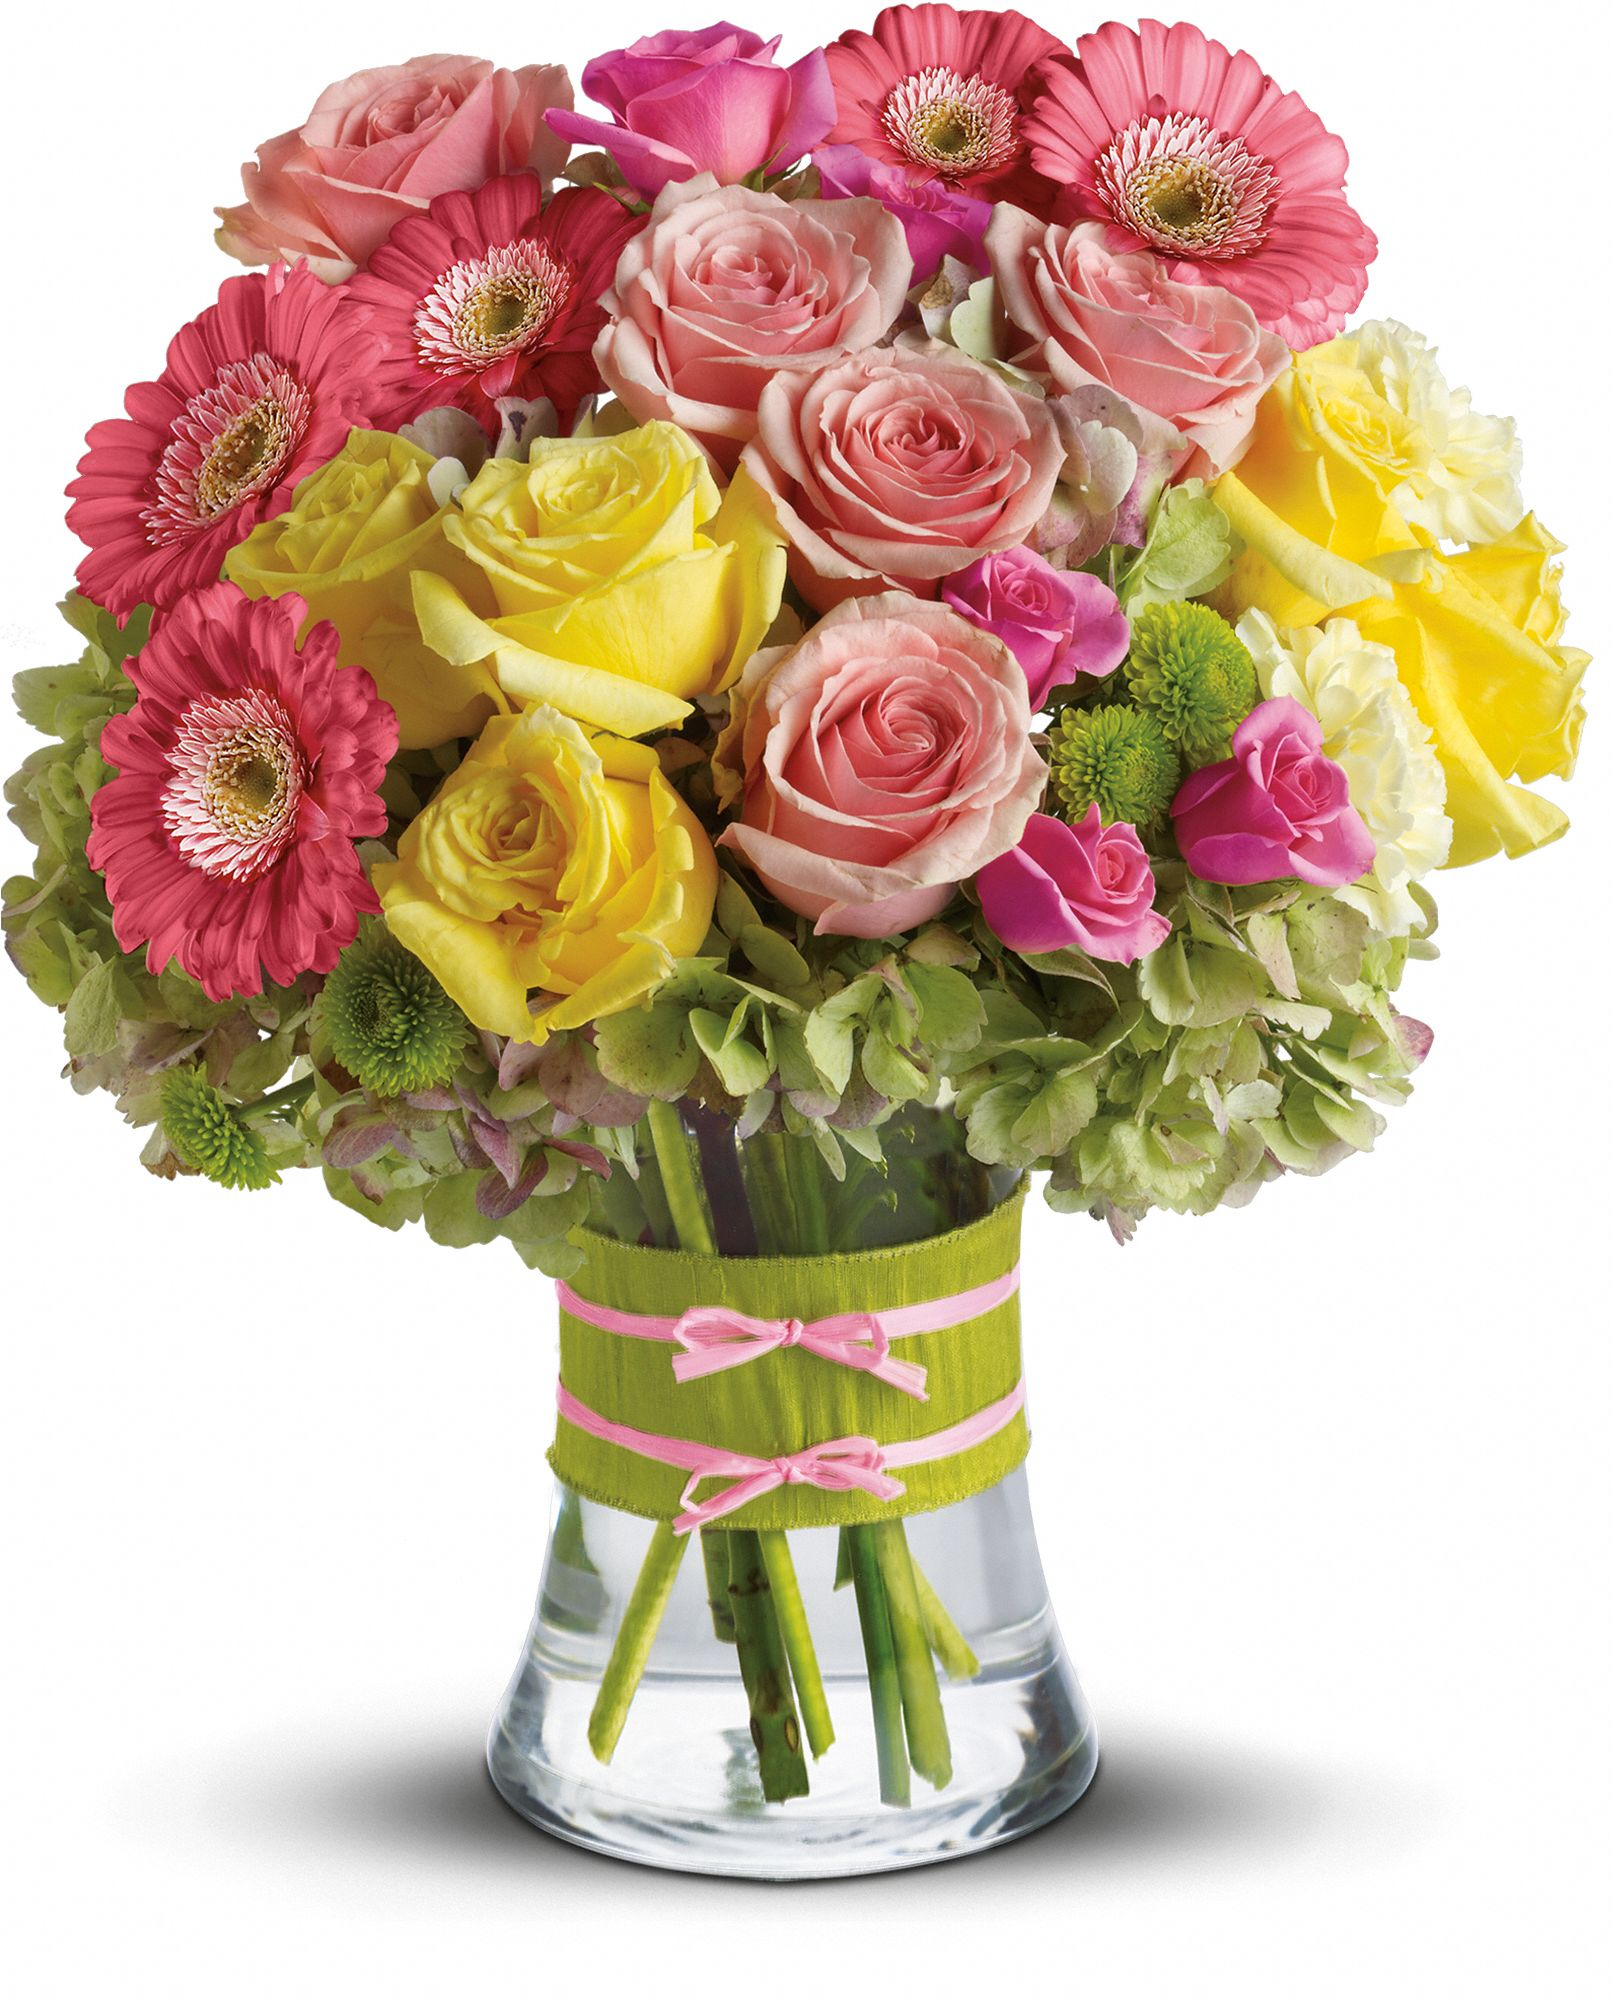 types of flowers with names and meanings. gerberas types of flowers with names and meanings n